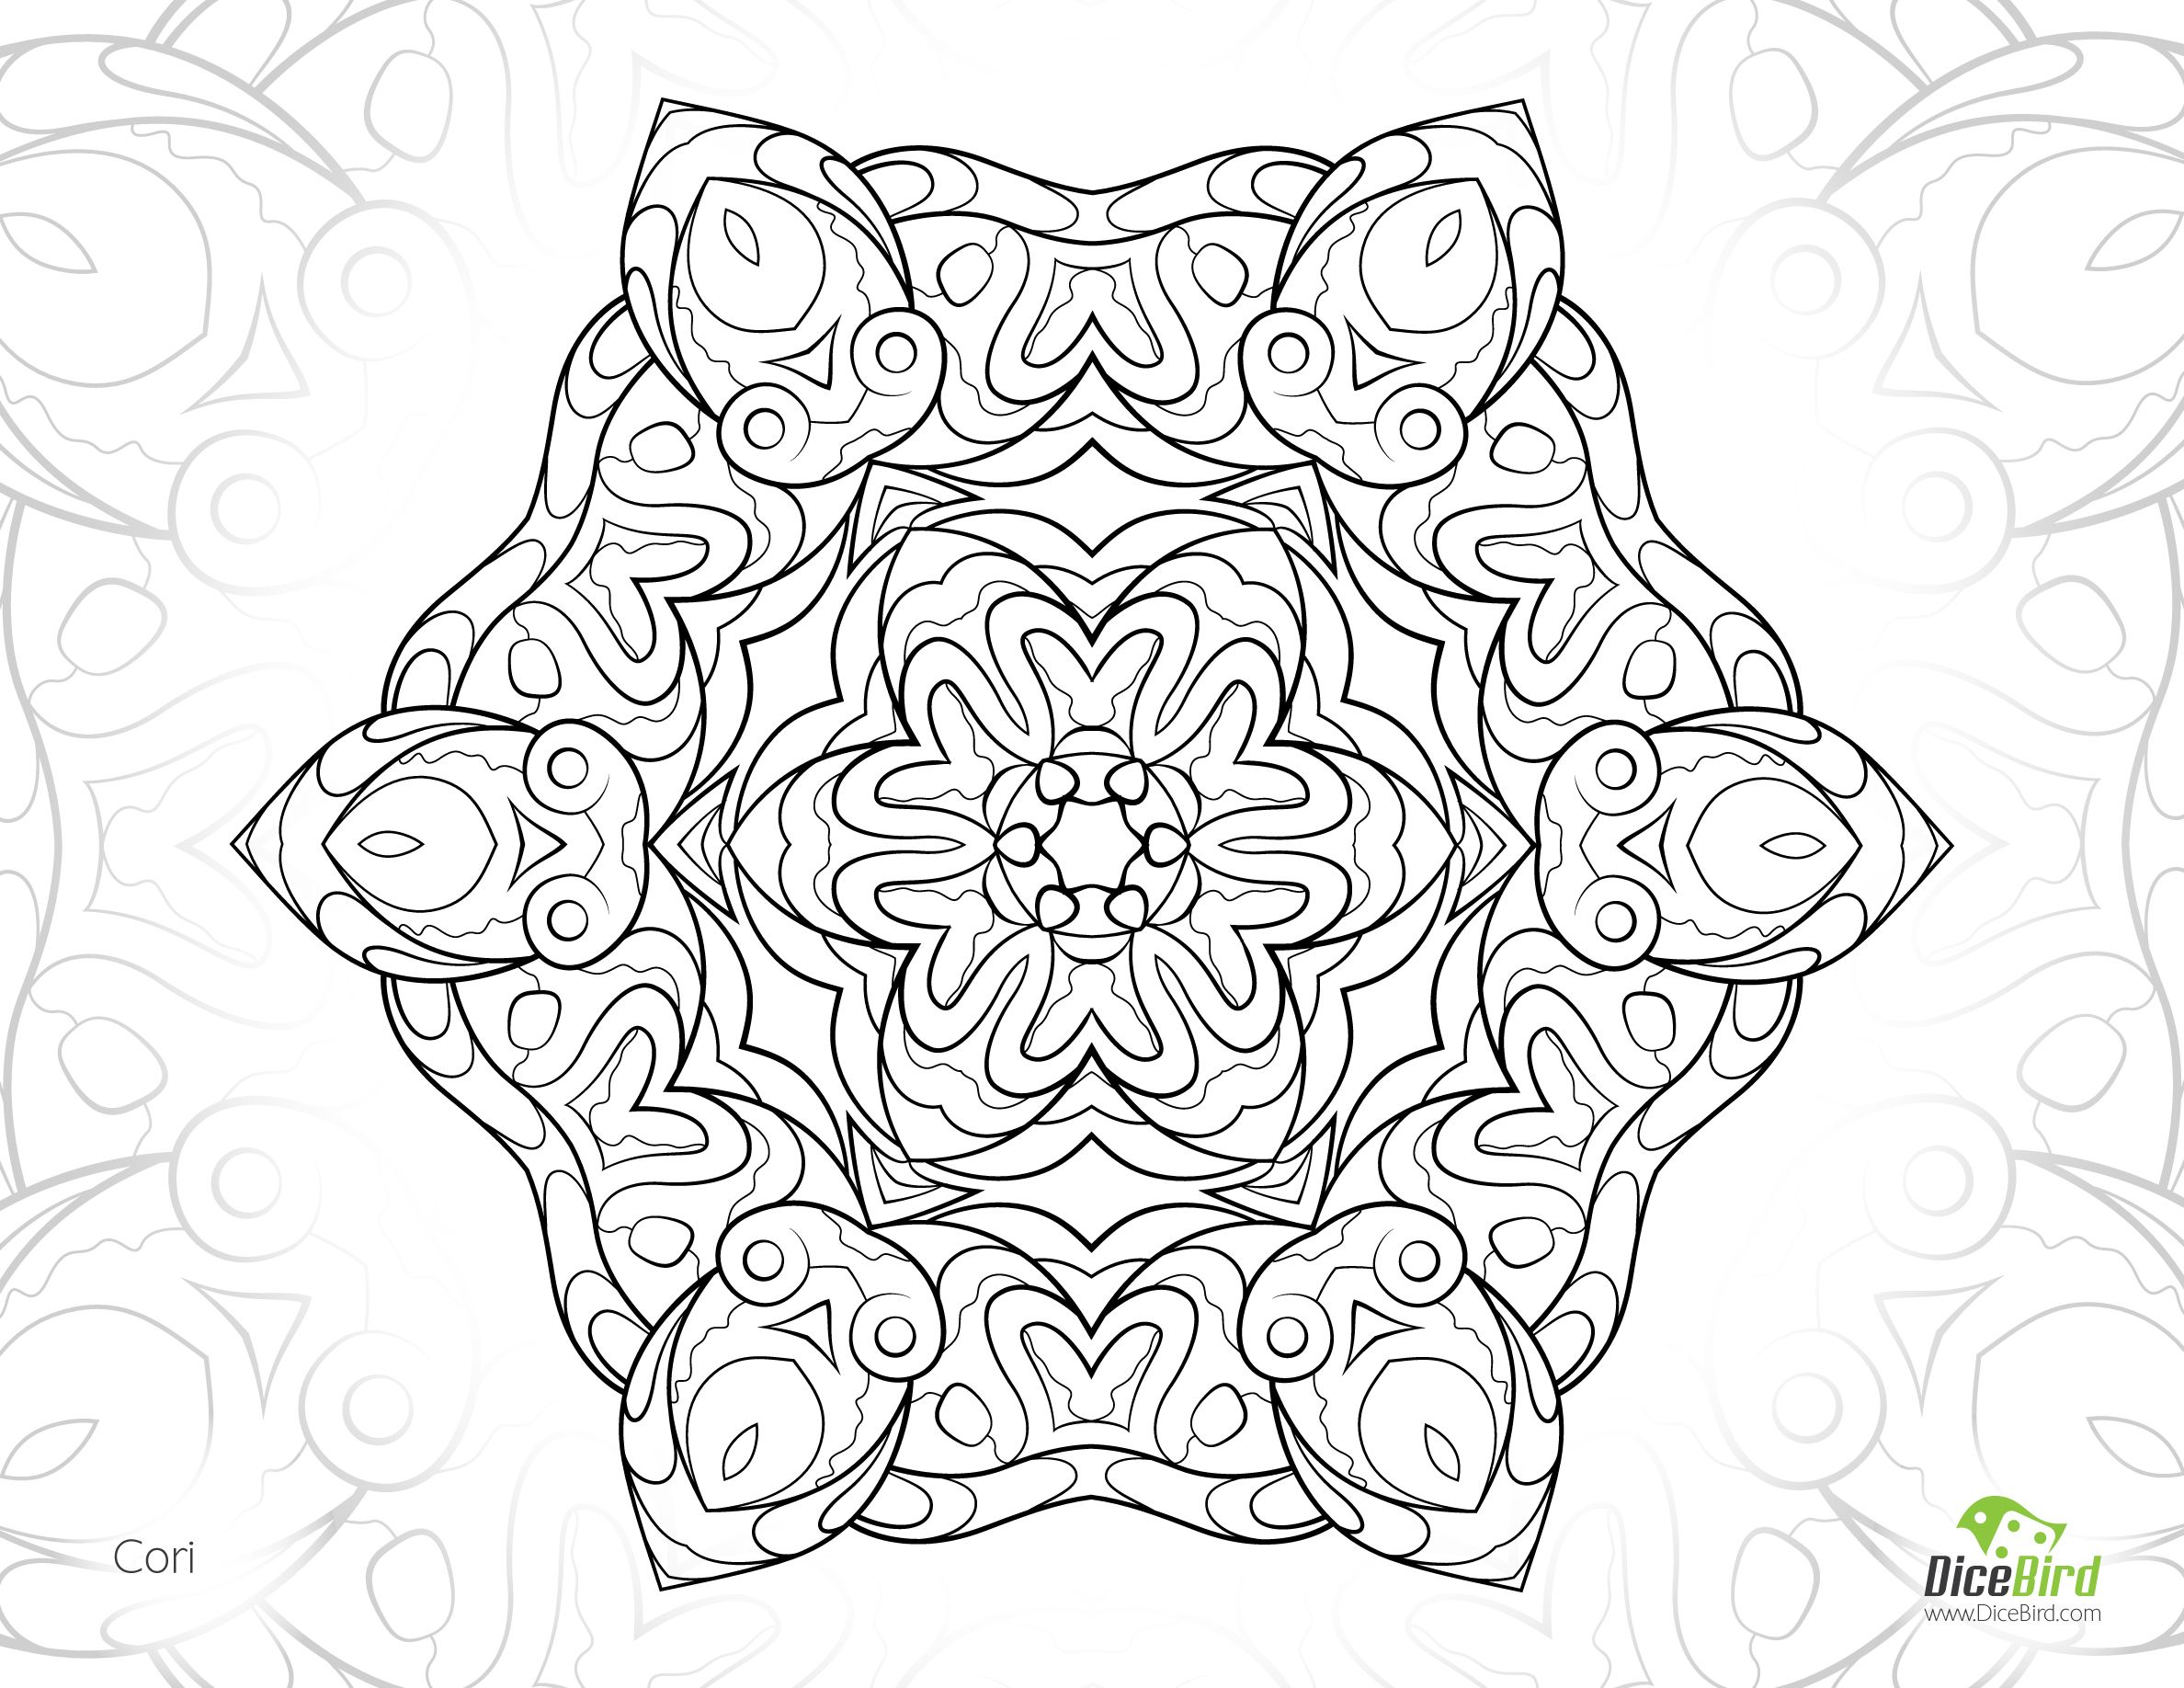 Cori Flower Free Printable Coloring Books For Adults